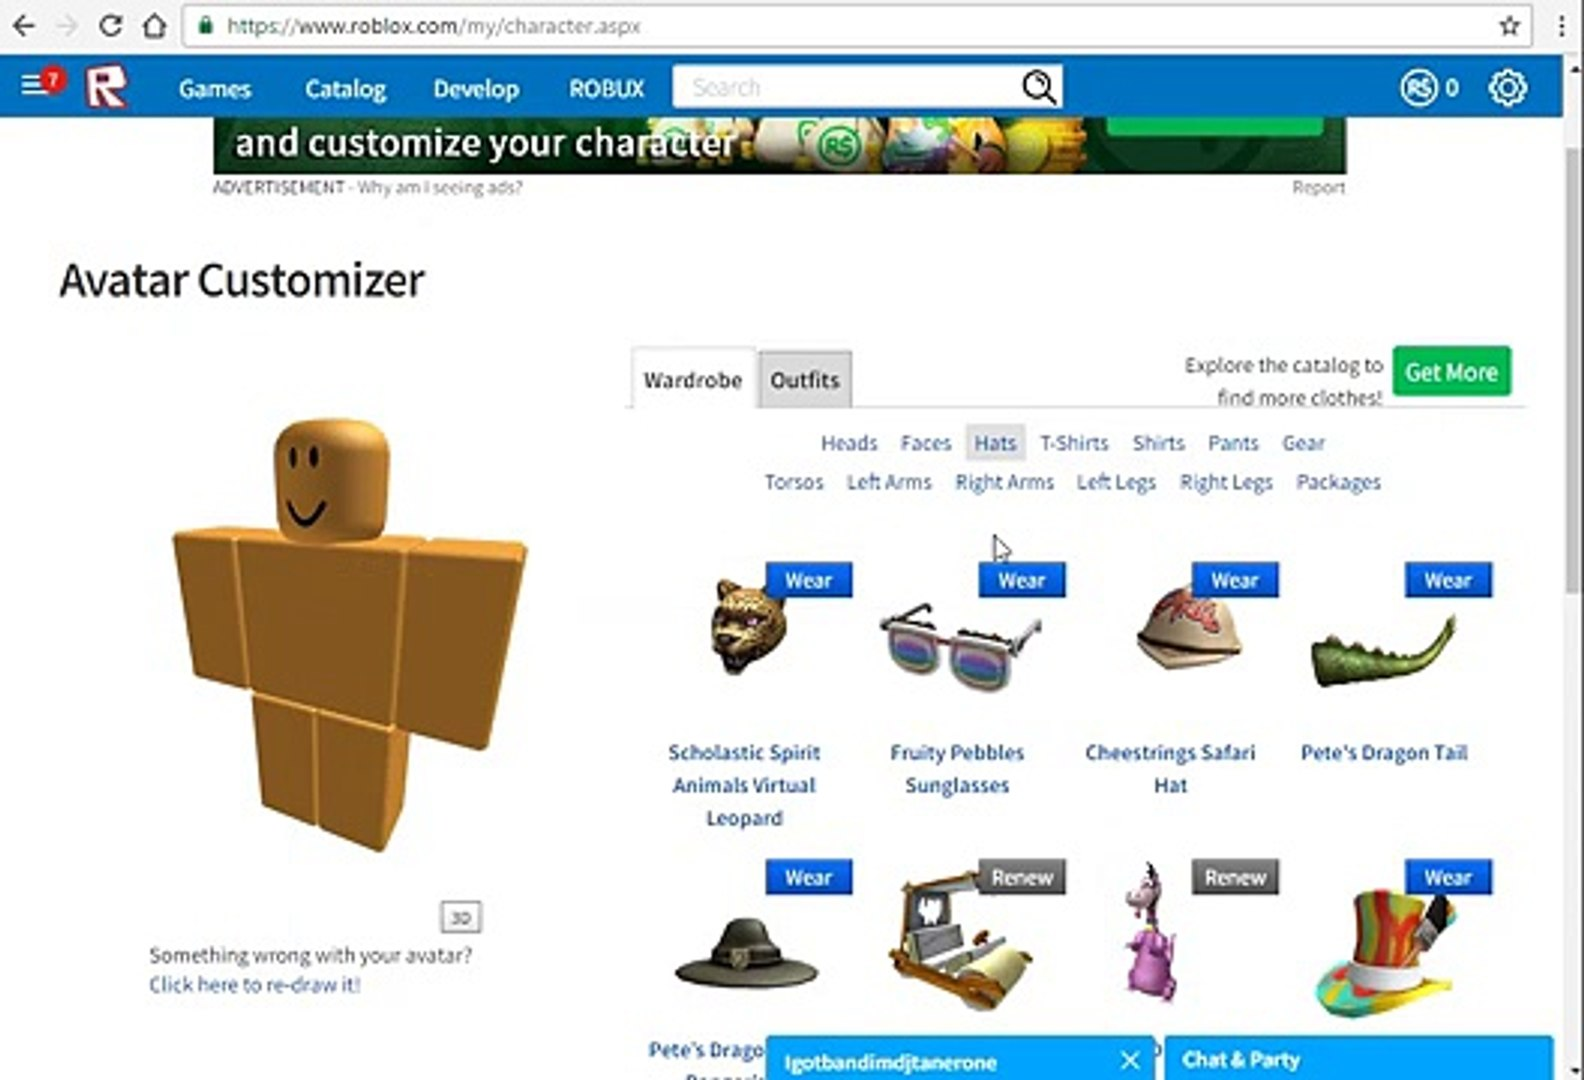 How To Make Ur Avatar Look Cool For Free Roblox - cool boy avatars in roblox